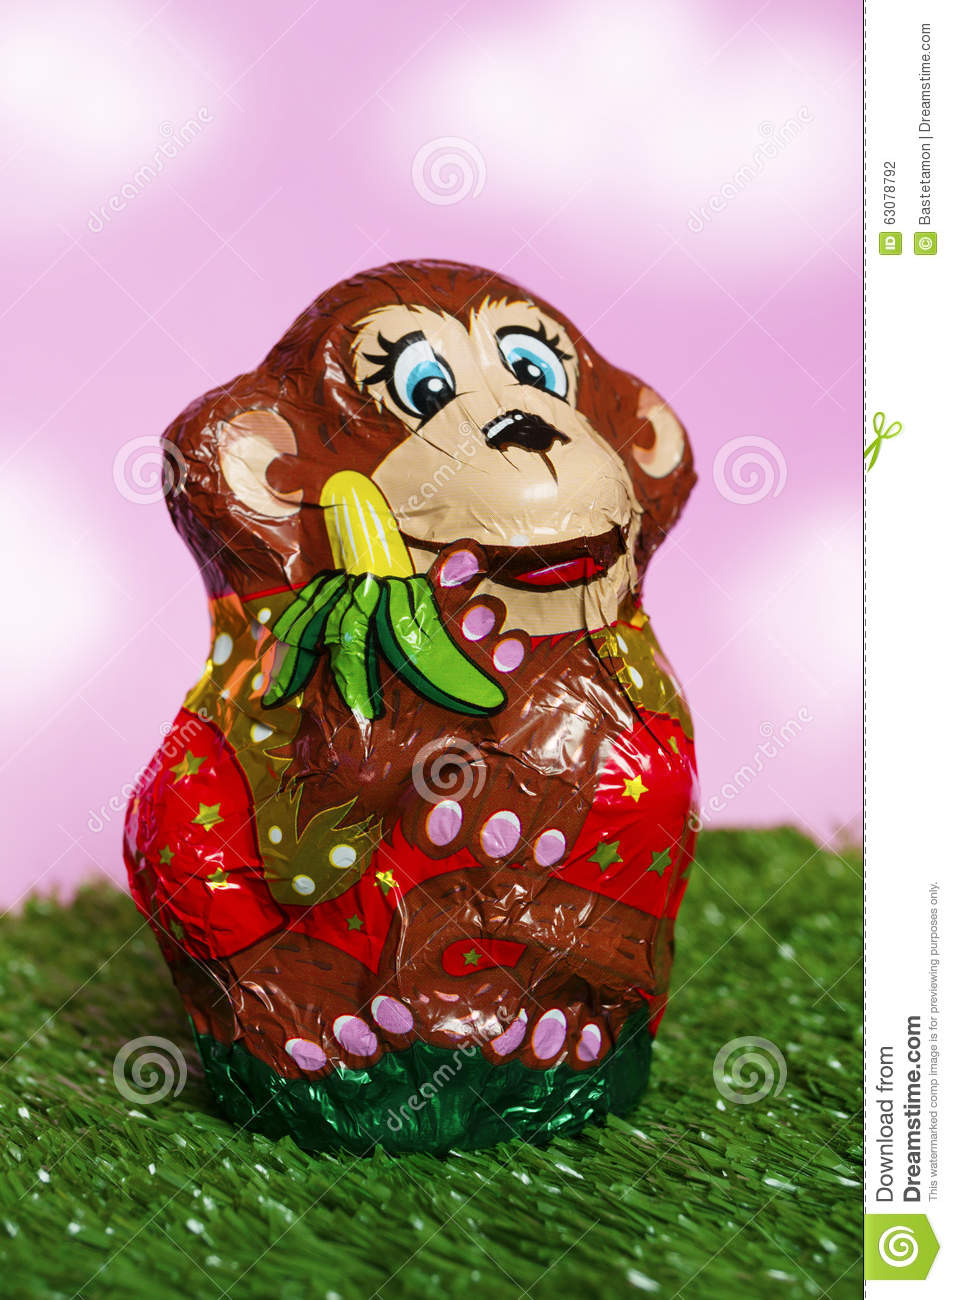 Chocolate Monkey In A Wrapper Stock Illustration - Image: 63078792